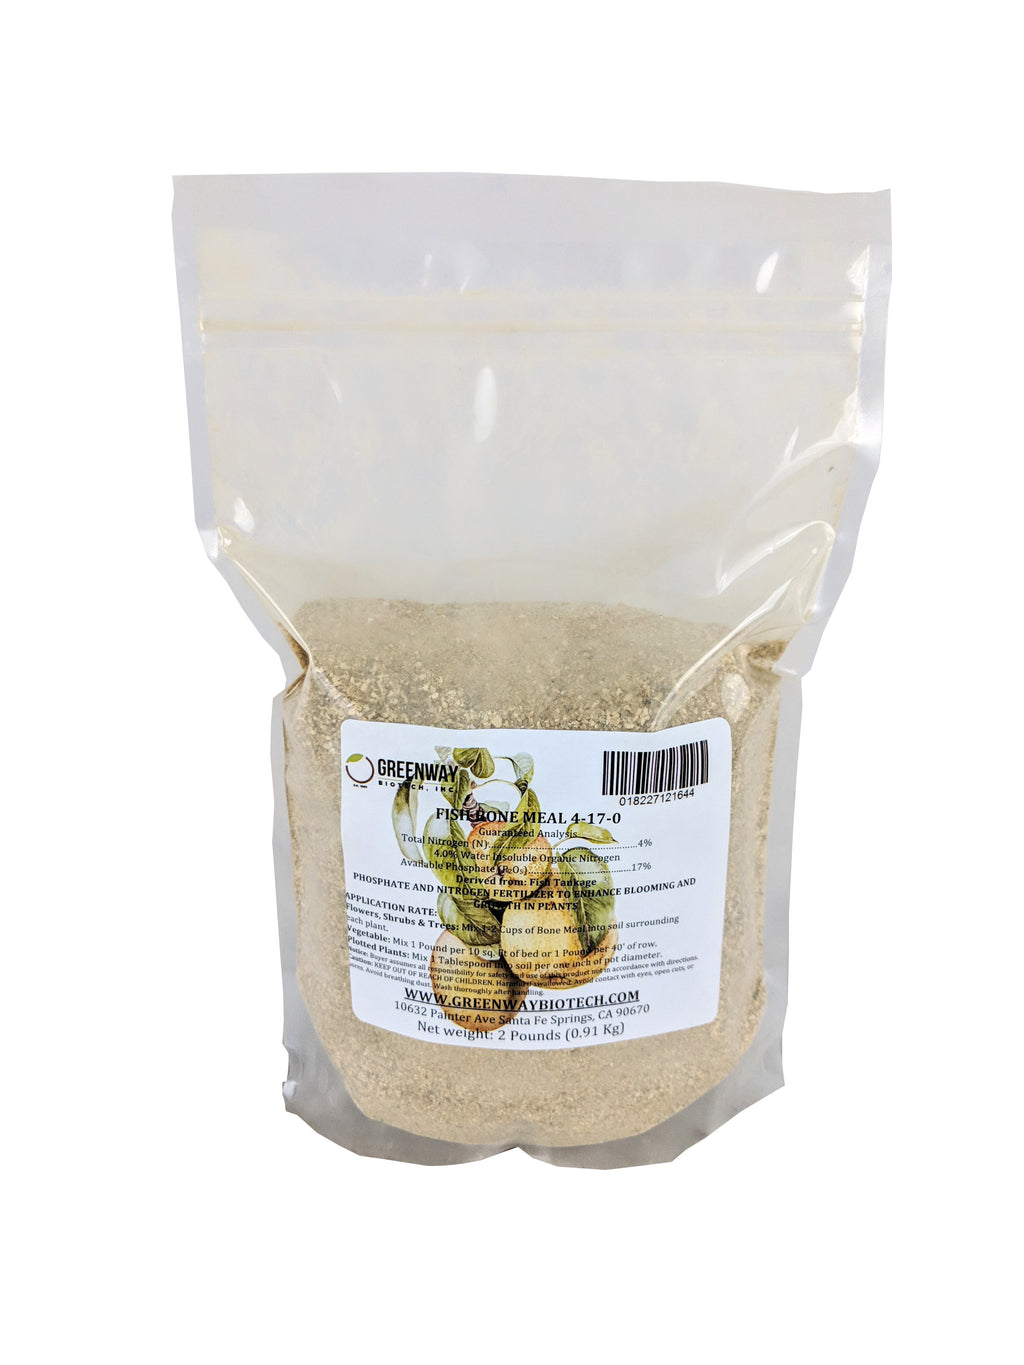 organic fish bone meal fertilizer 4-17-0 2 pounds